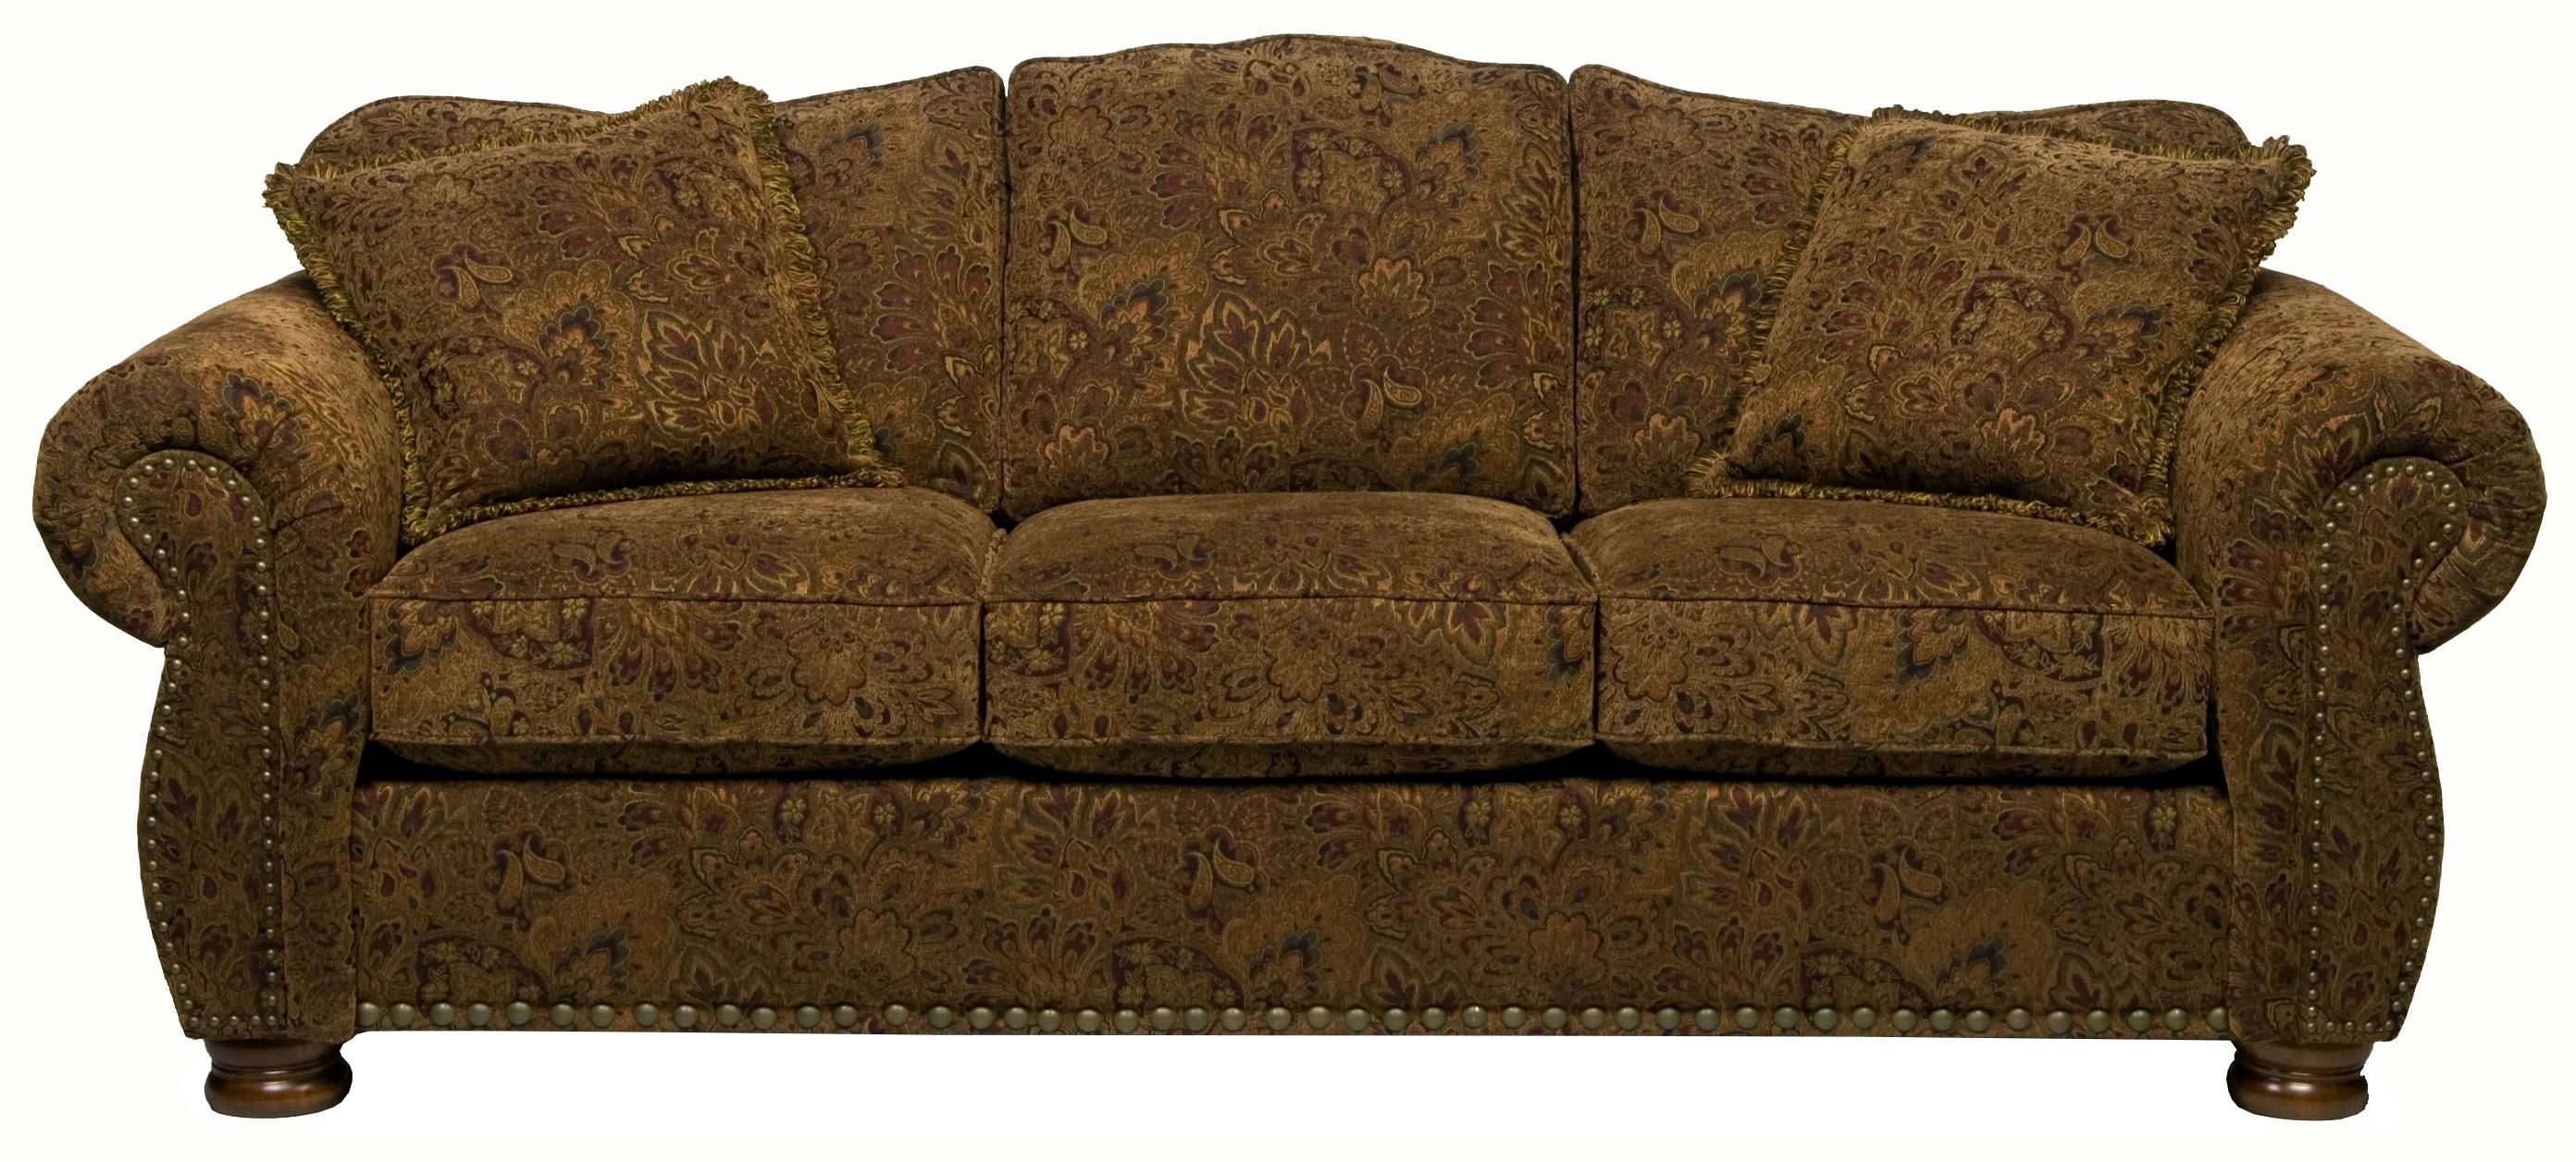 Pleasant 326 Camel Back Sofa By Stanton Sofas Stanton Furniture Home Interior And Landscaping Dextoversignezvosmurscom